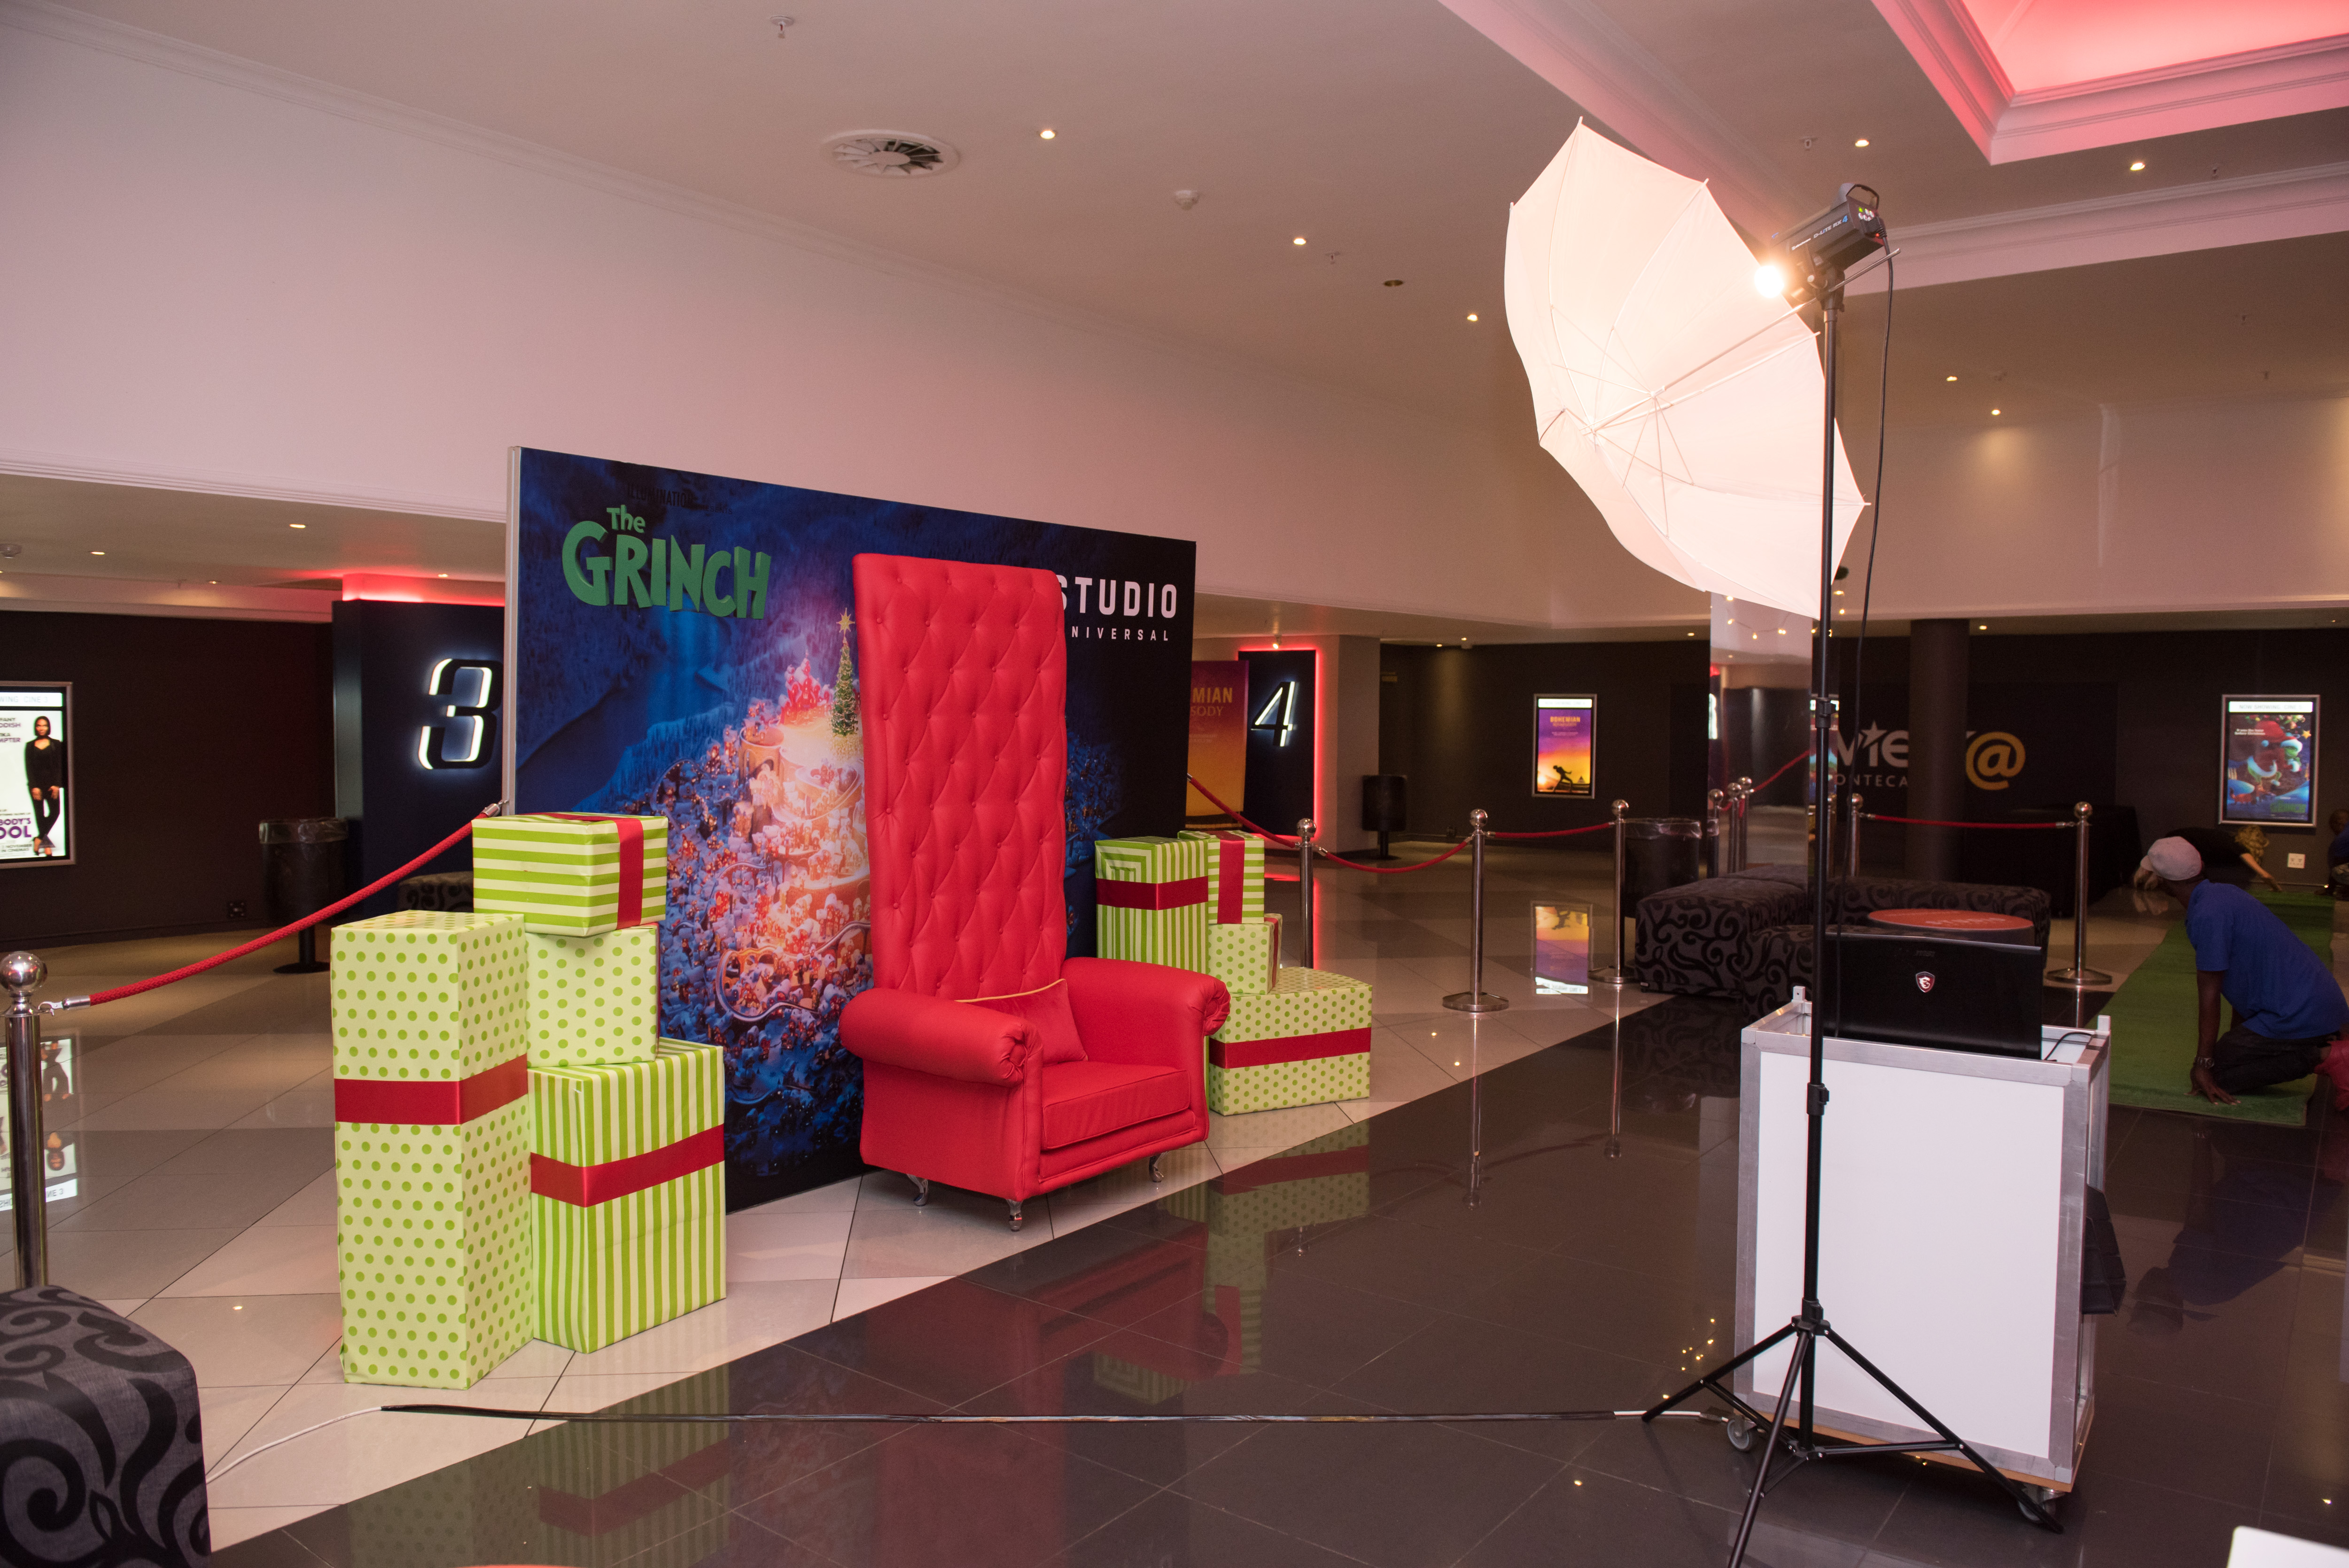 The Grinch movie screening set up at the cinema foyer